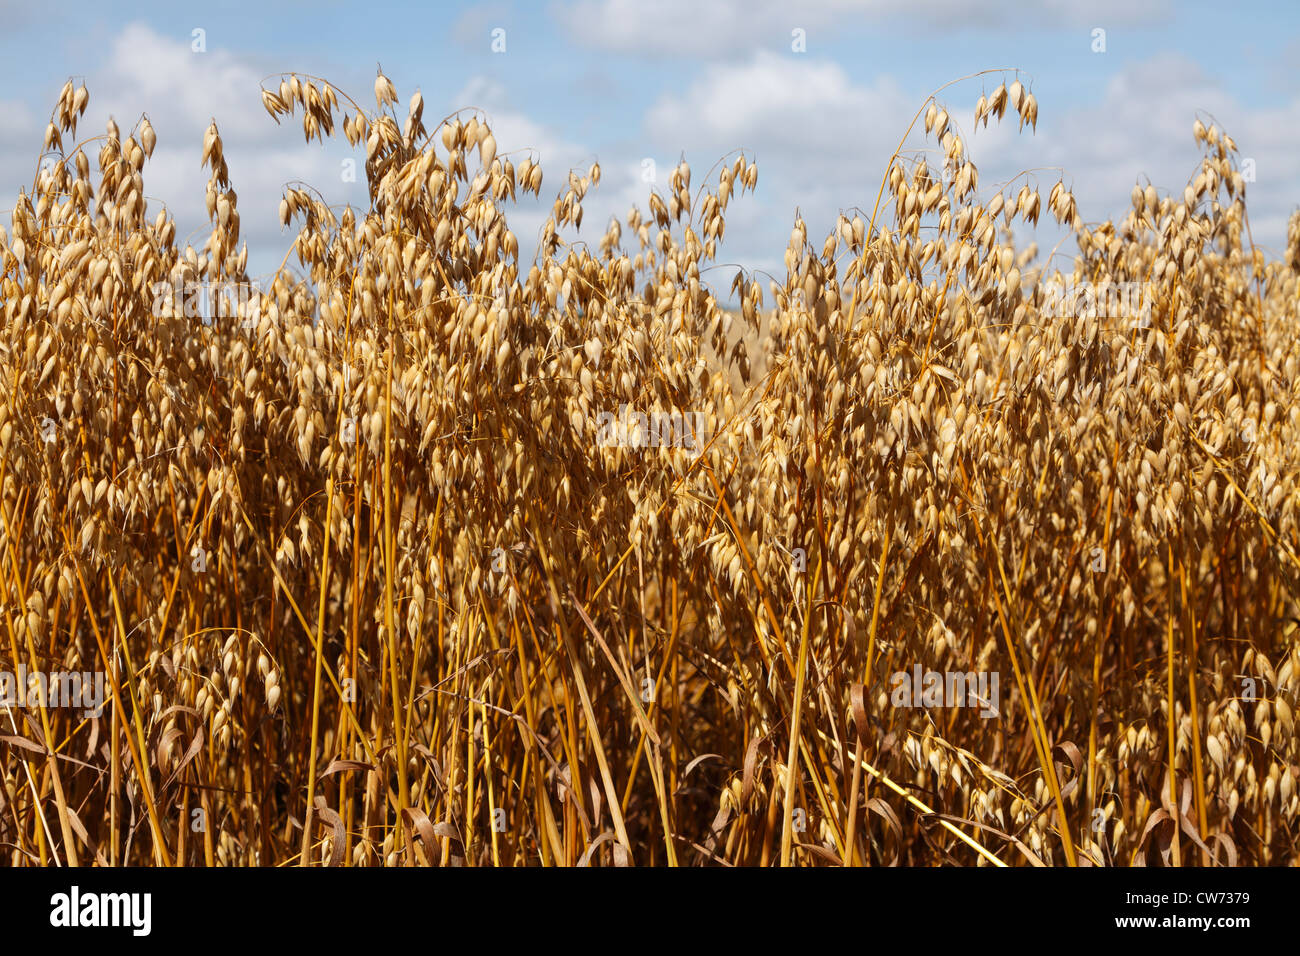 Ripe ears of oat and oat field last days before harvesting in Denmark. - Stock Image